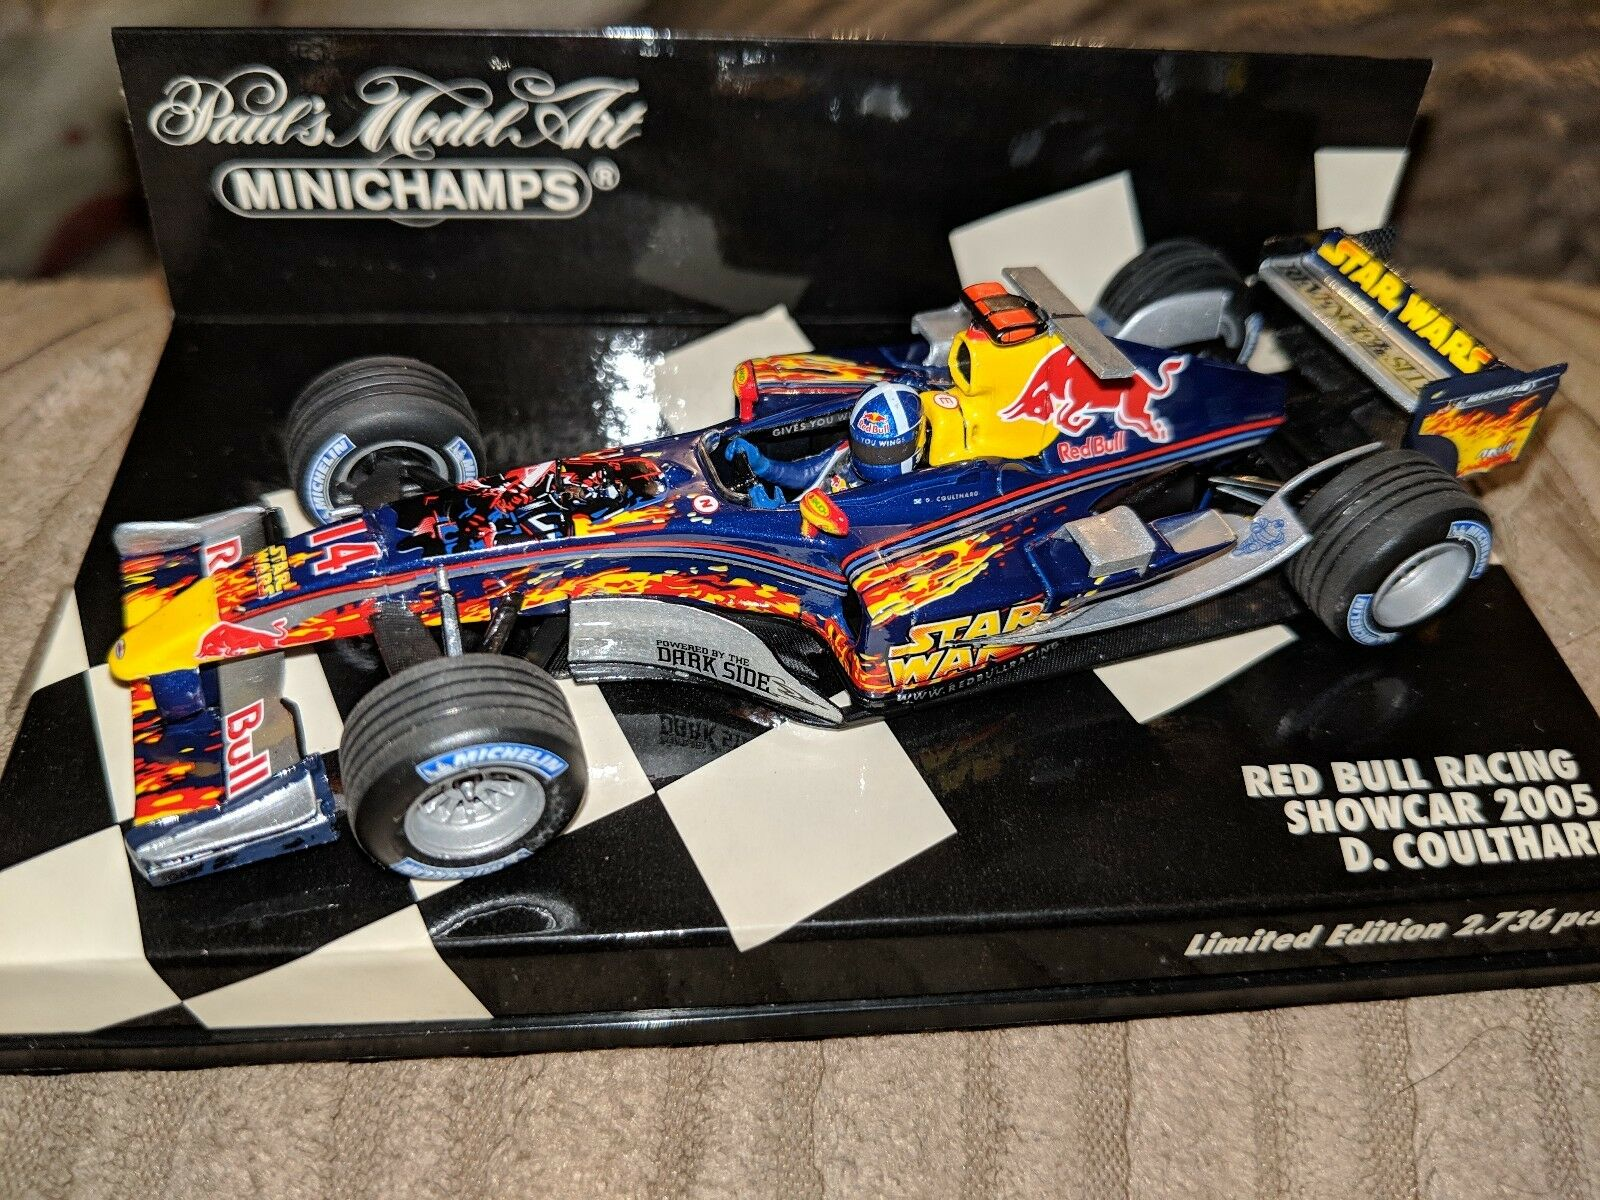 1 43 D COULTHARD-rouge Bull RB1, STAR WARS 2005-F1 Minichamps